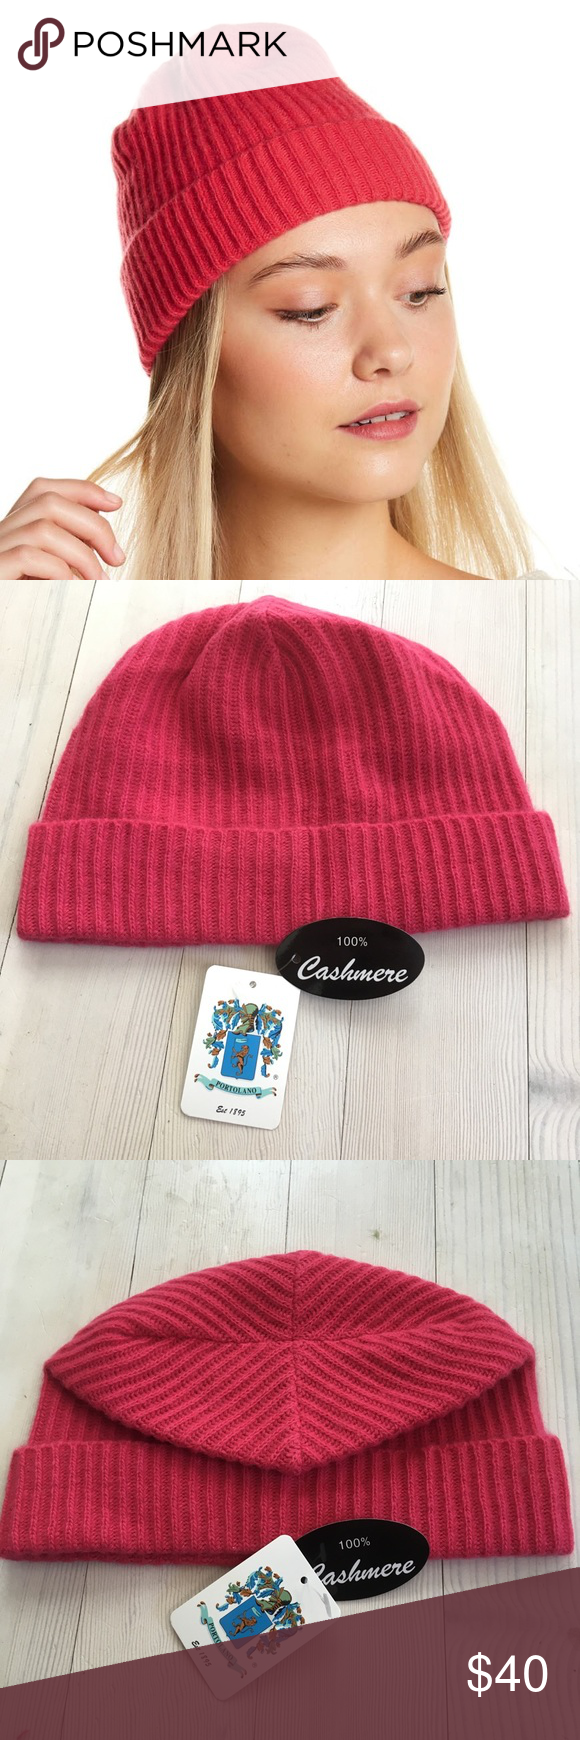 a85999c42ae Portolano Ribbed Cuffed 100% Cashmere Beanie Hat Portolano Ribbed Cuffed 100%  Cashmere Beanie Hat Women s NWT  85 Candy Pink. New with tags. Very soft.